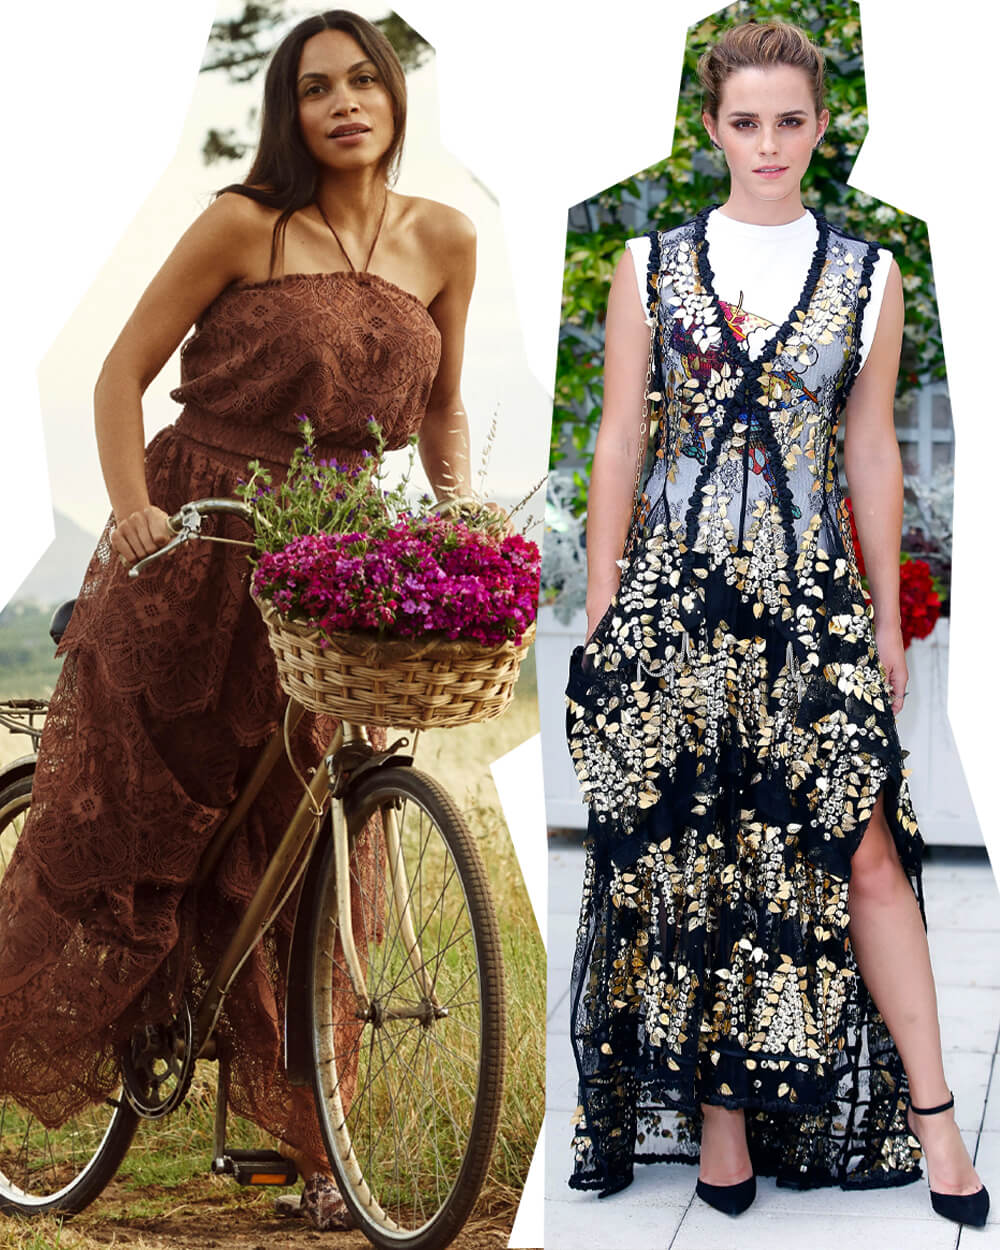 Sustainable Fashion Celebs Emma Watson and Rosario Dawson - conscious celebrity styles